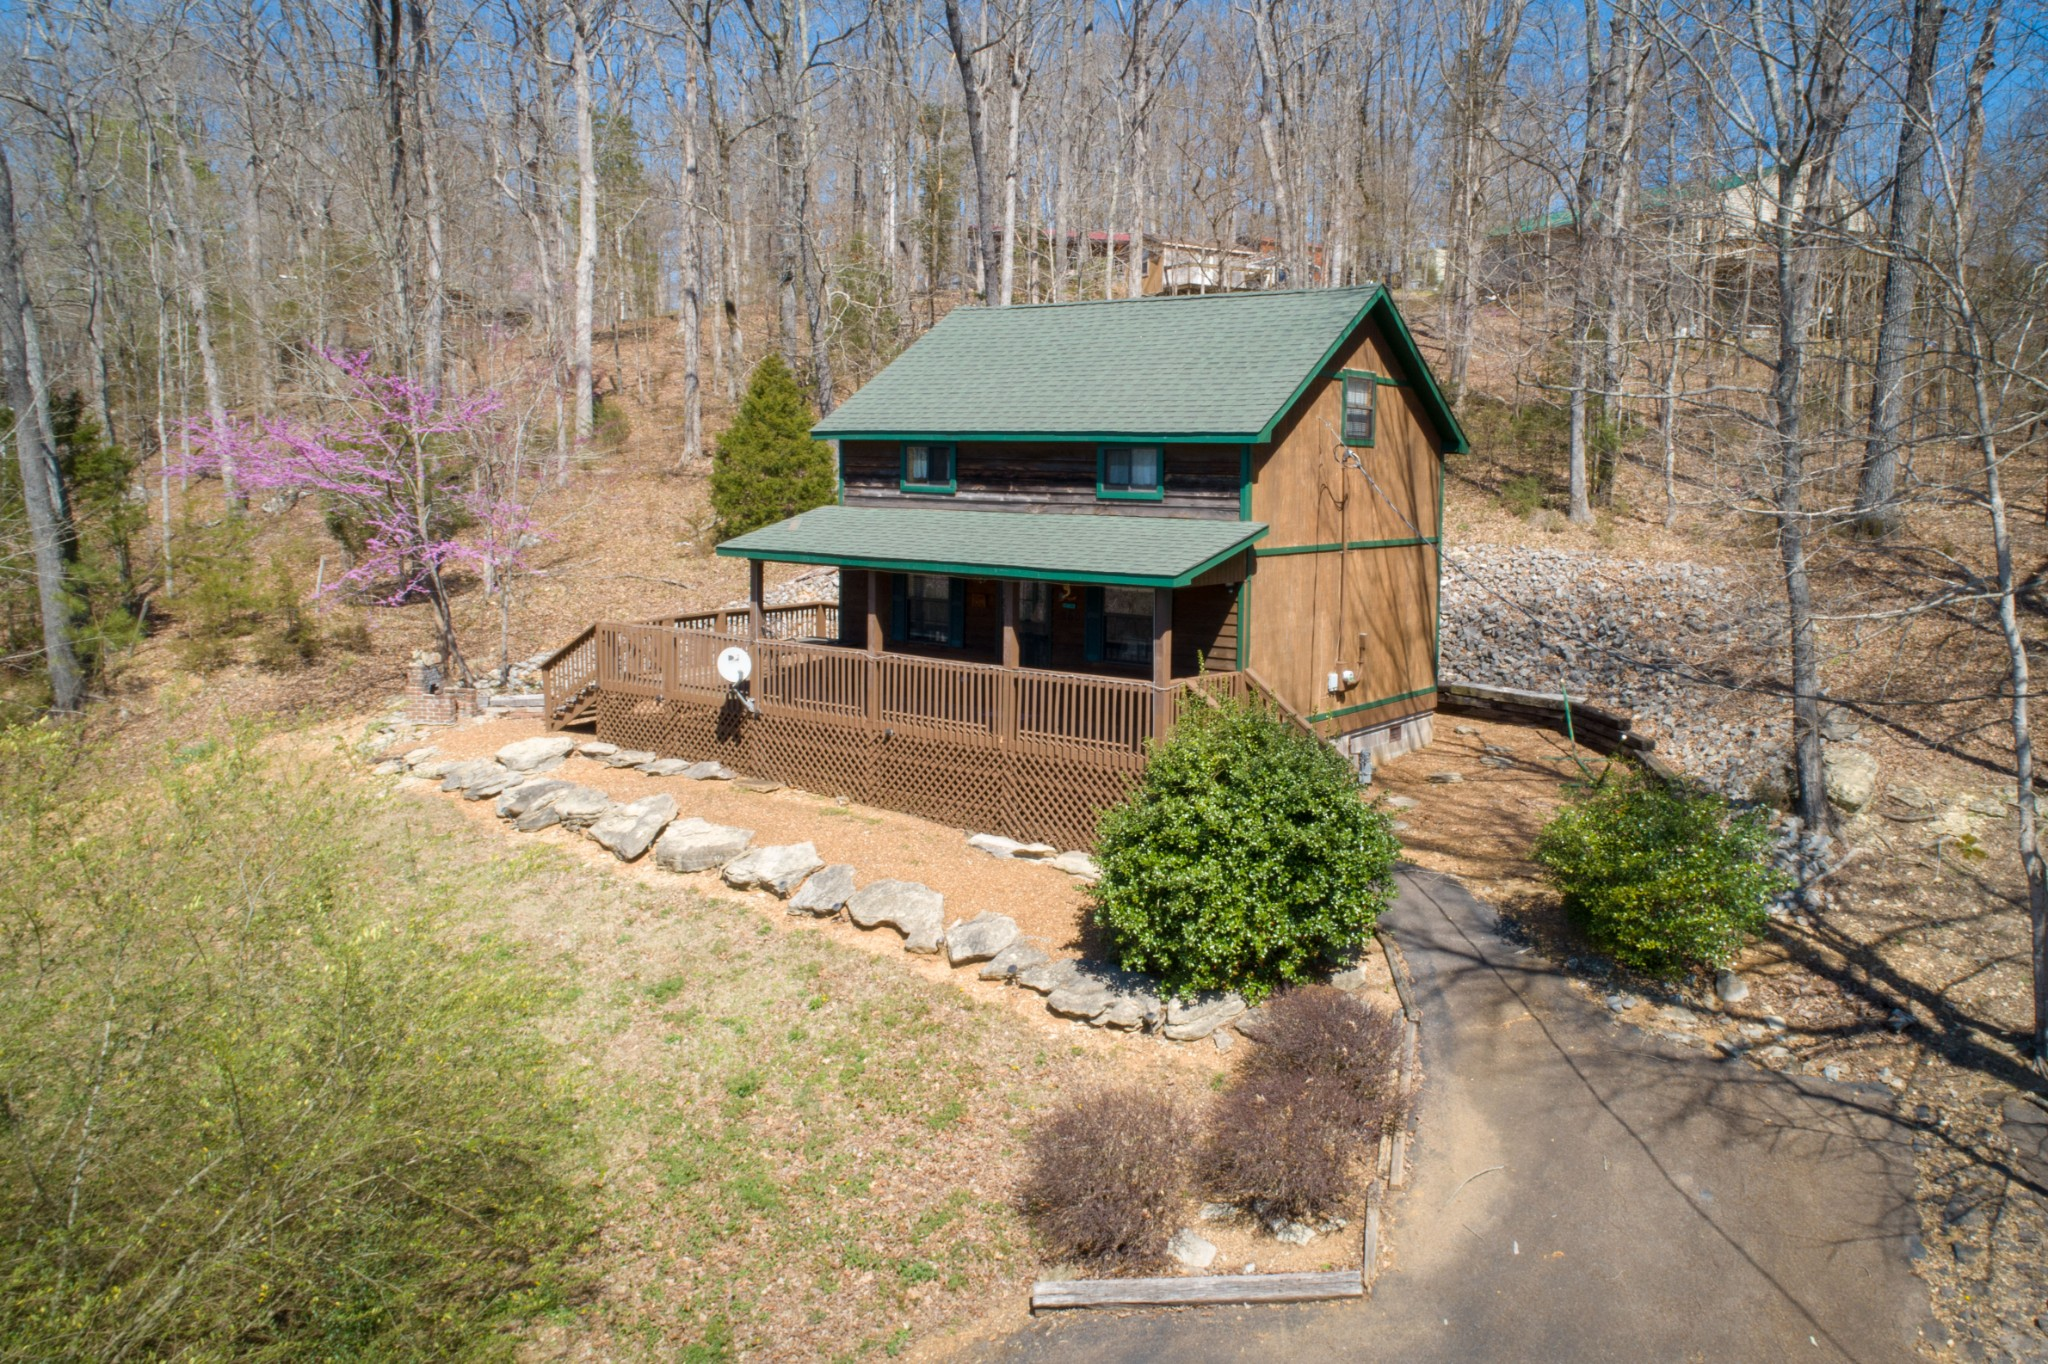 260 Landmark Ln, Decaturville, TN 38329 - Decaturville, TN real estate listing